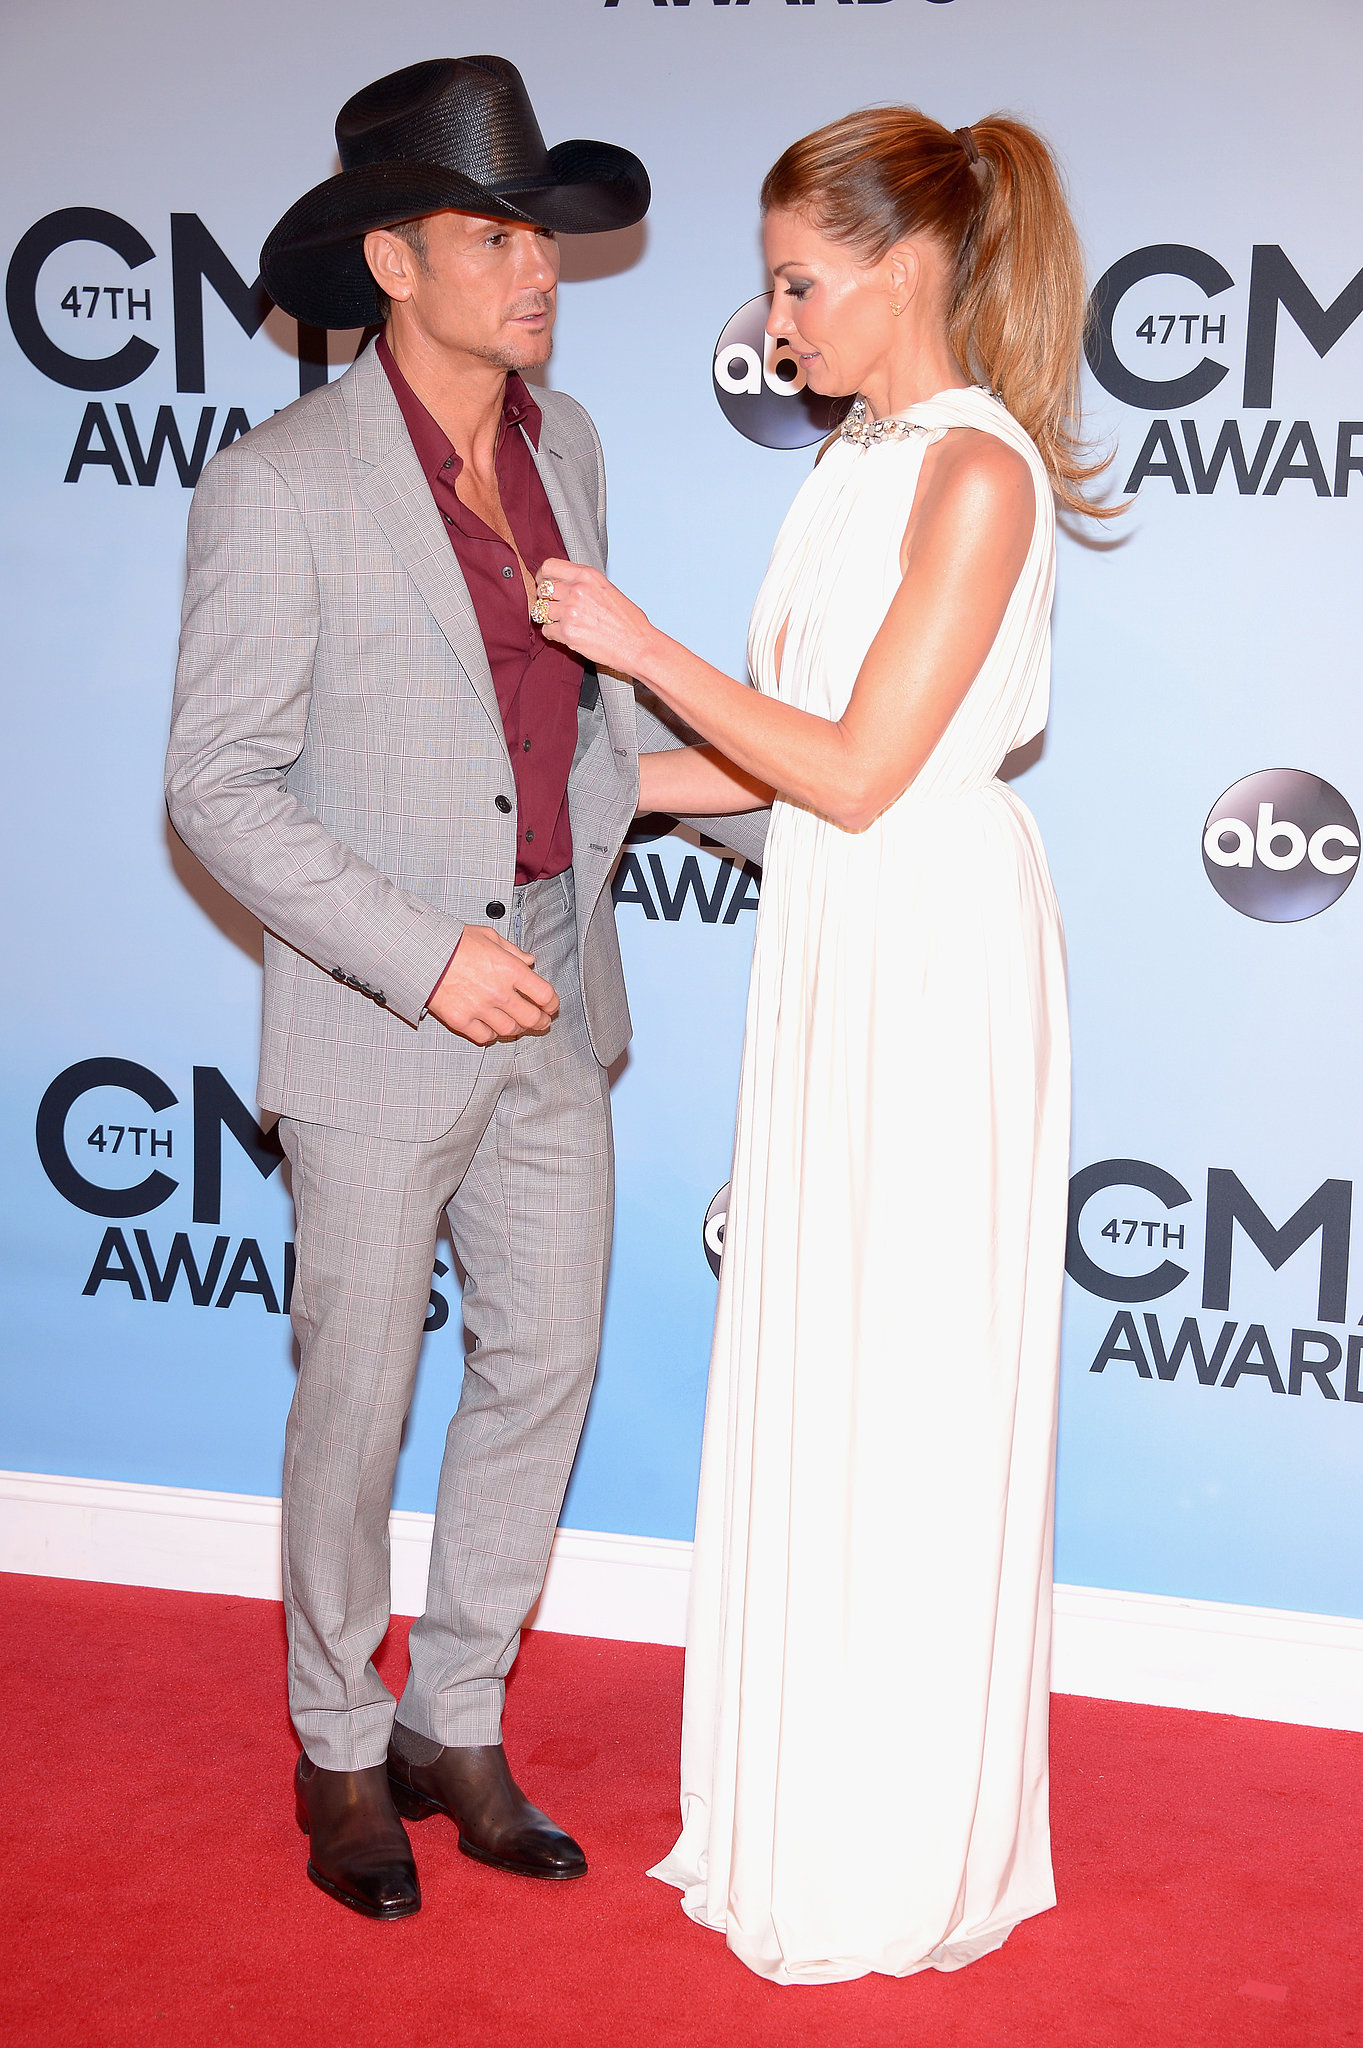 Faith Hill adjusted her husband Tim McGraw's shirt.